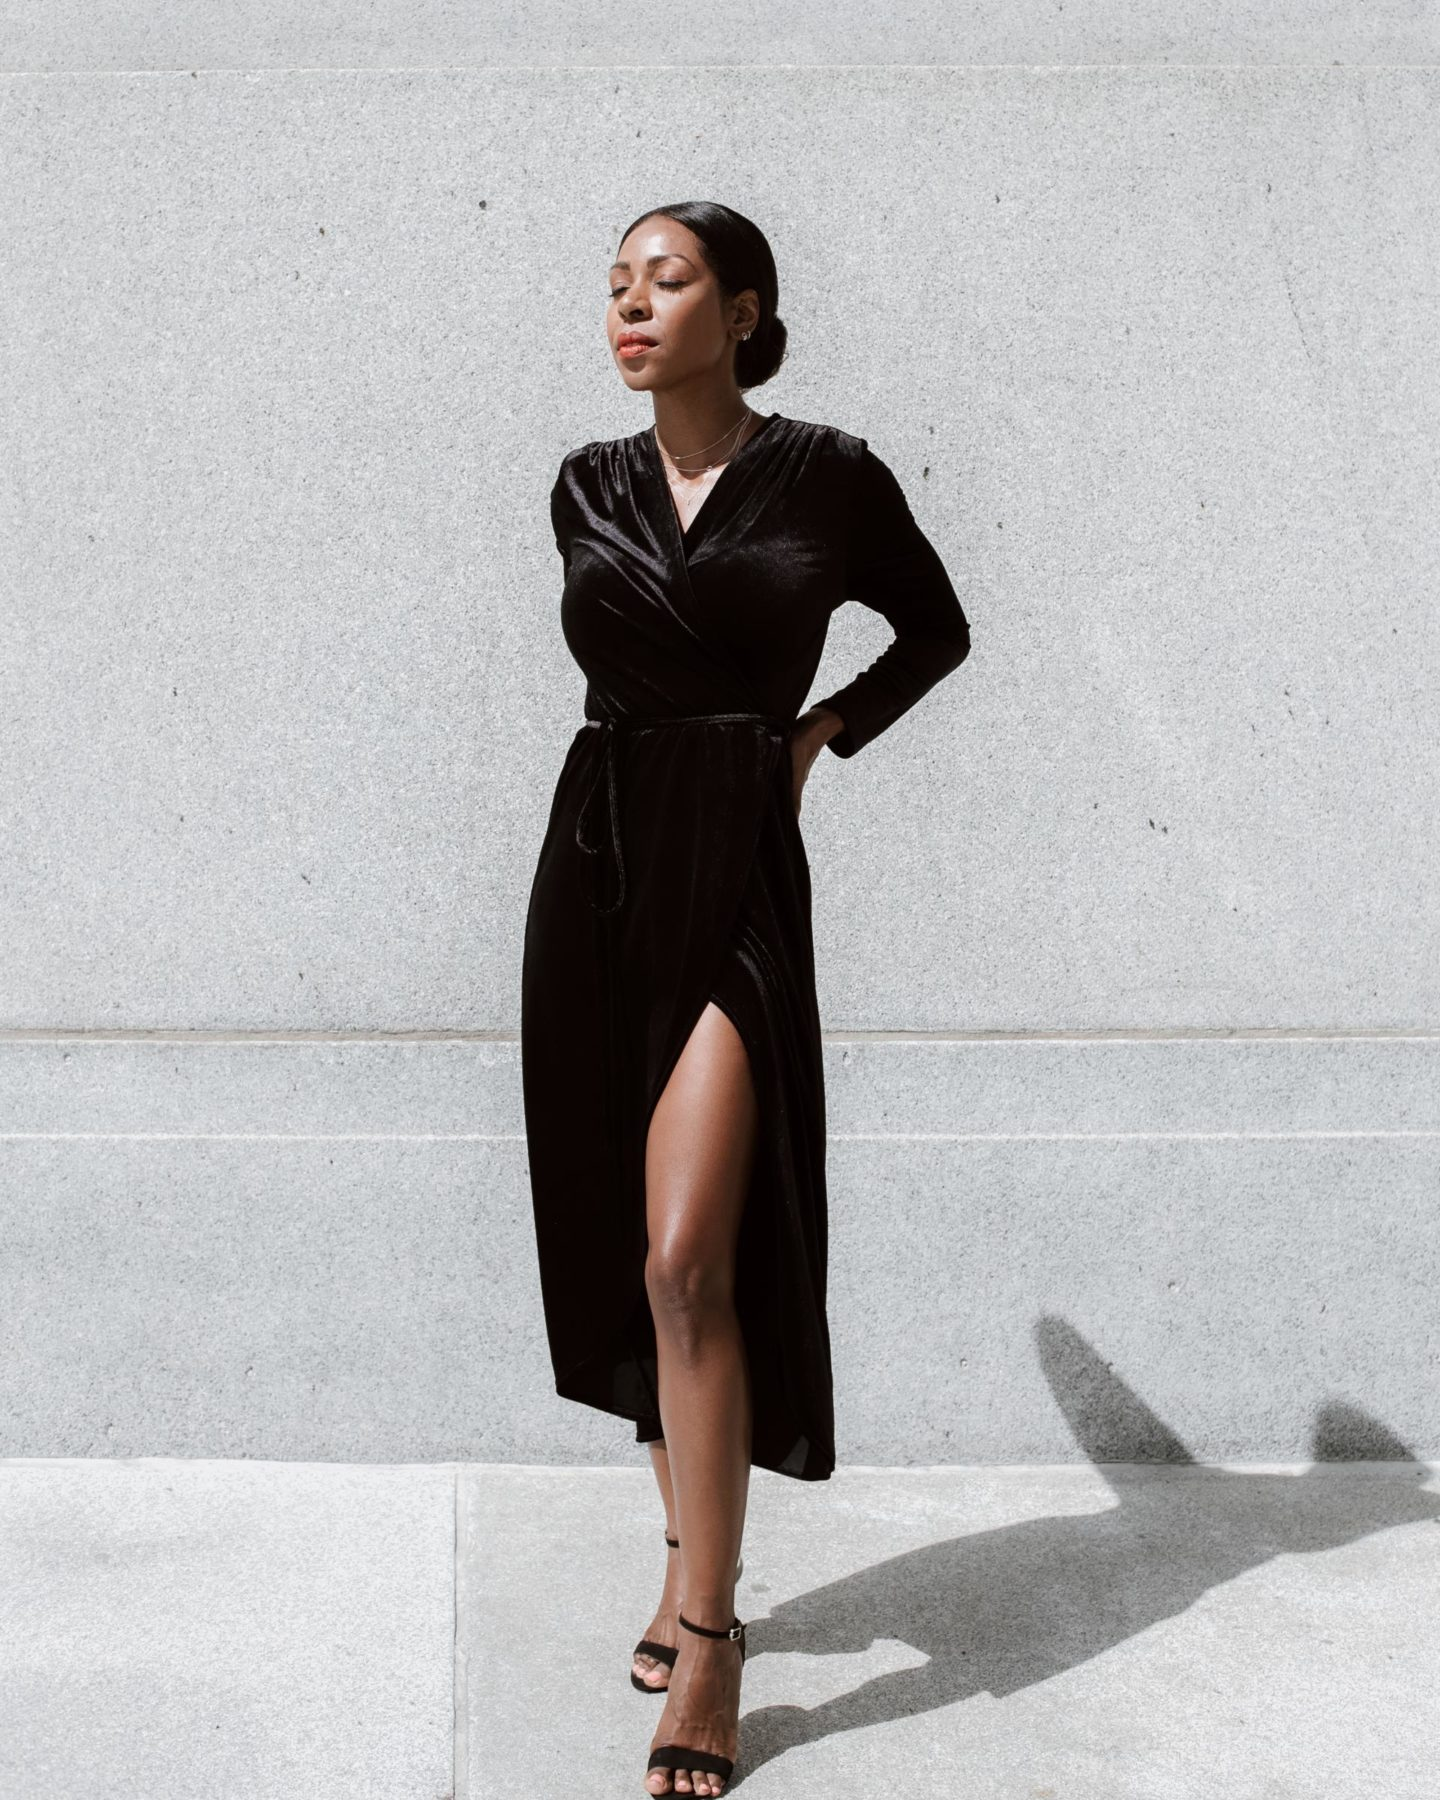 Dominique Baker Wearing a black velvet dress enjoying the sun